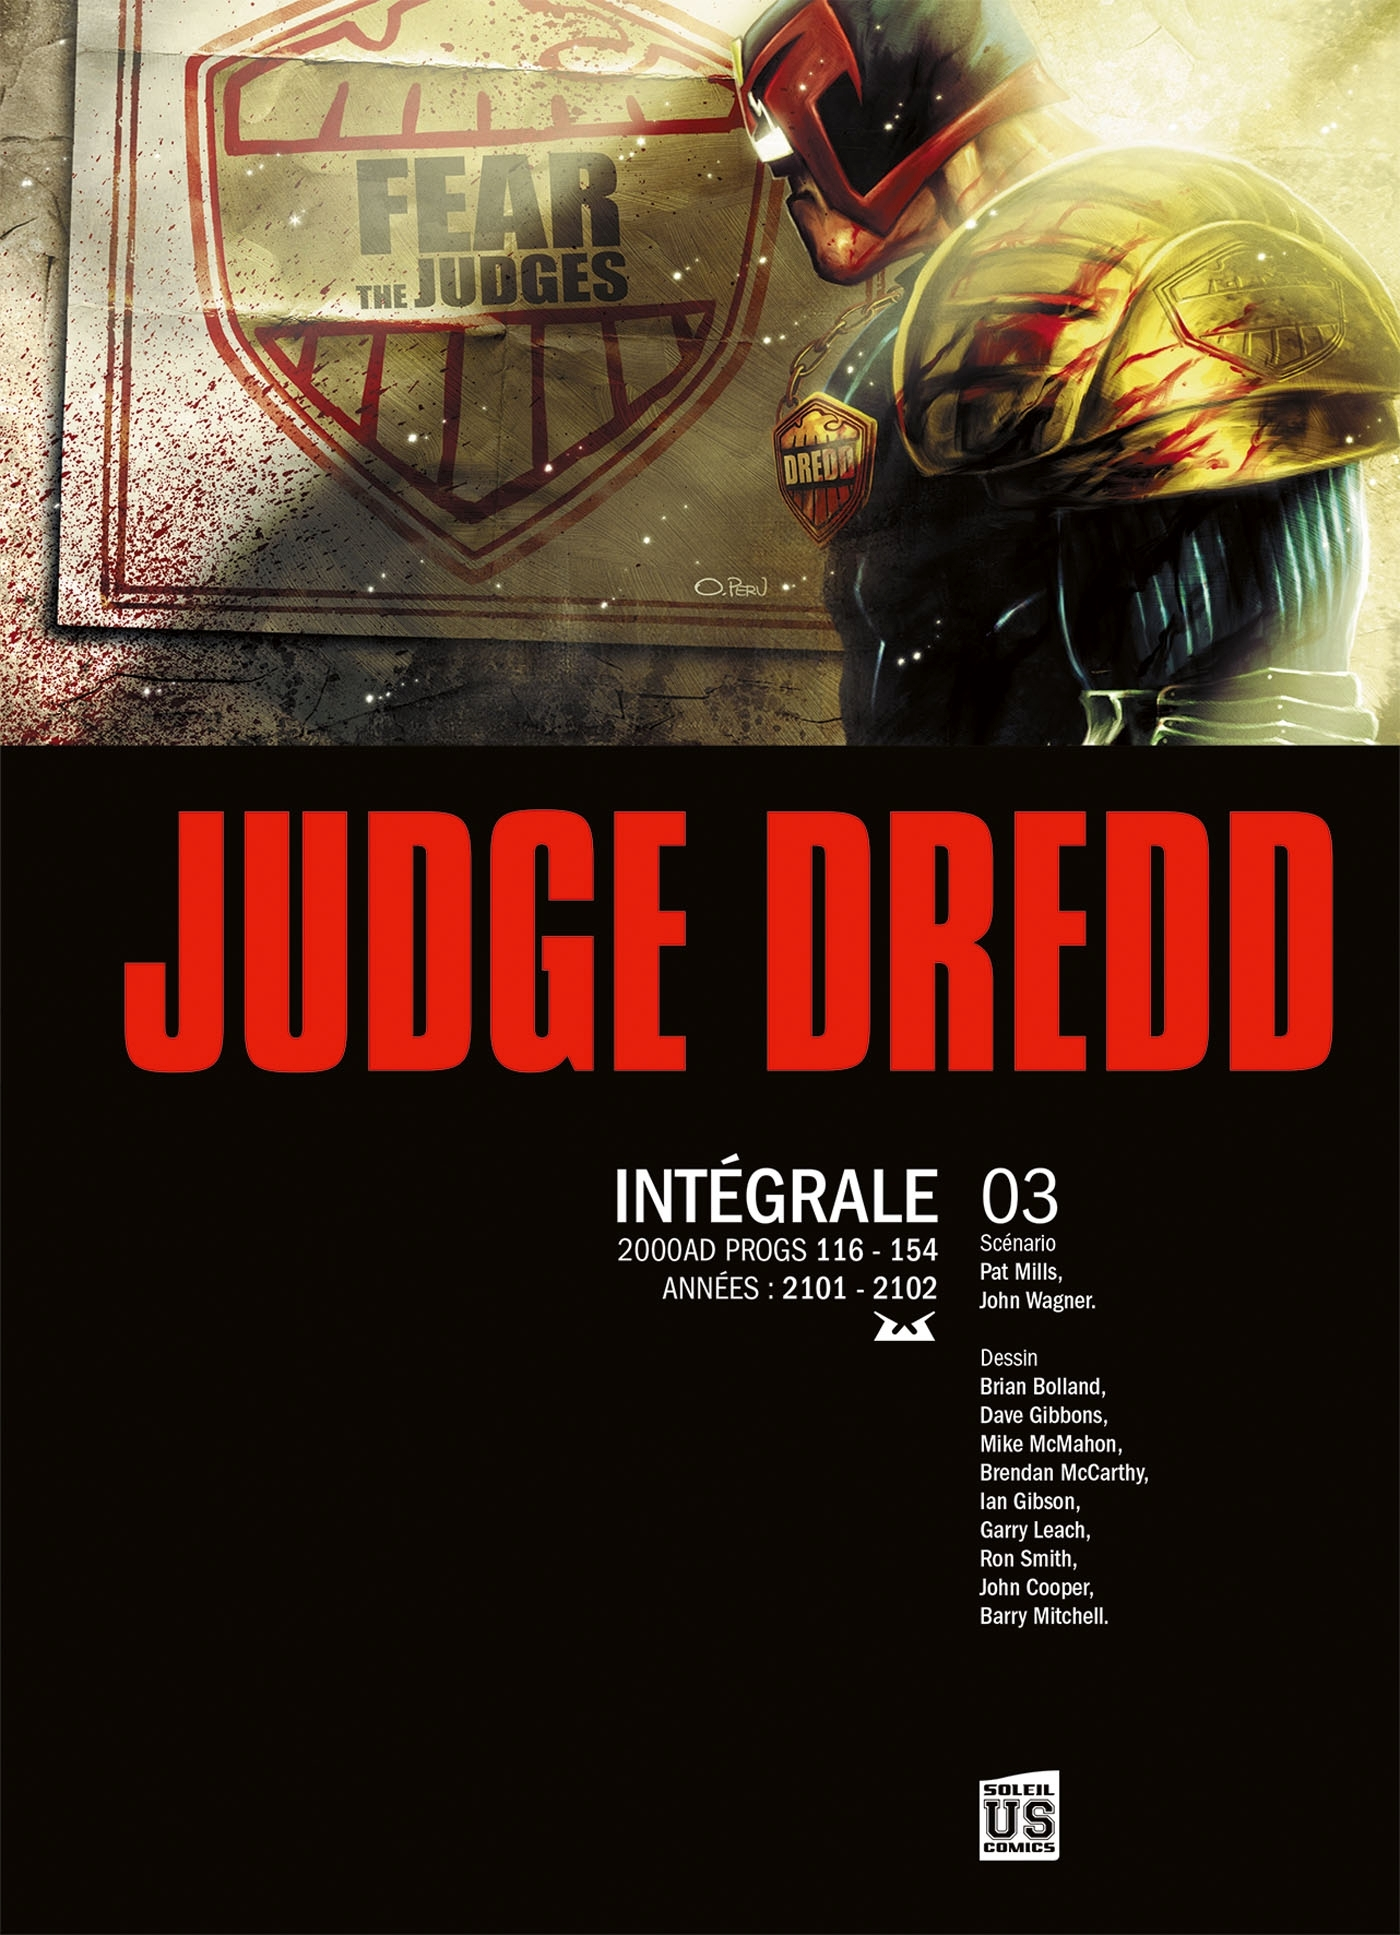 JUDGE DREDD - INTEGRALE T3